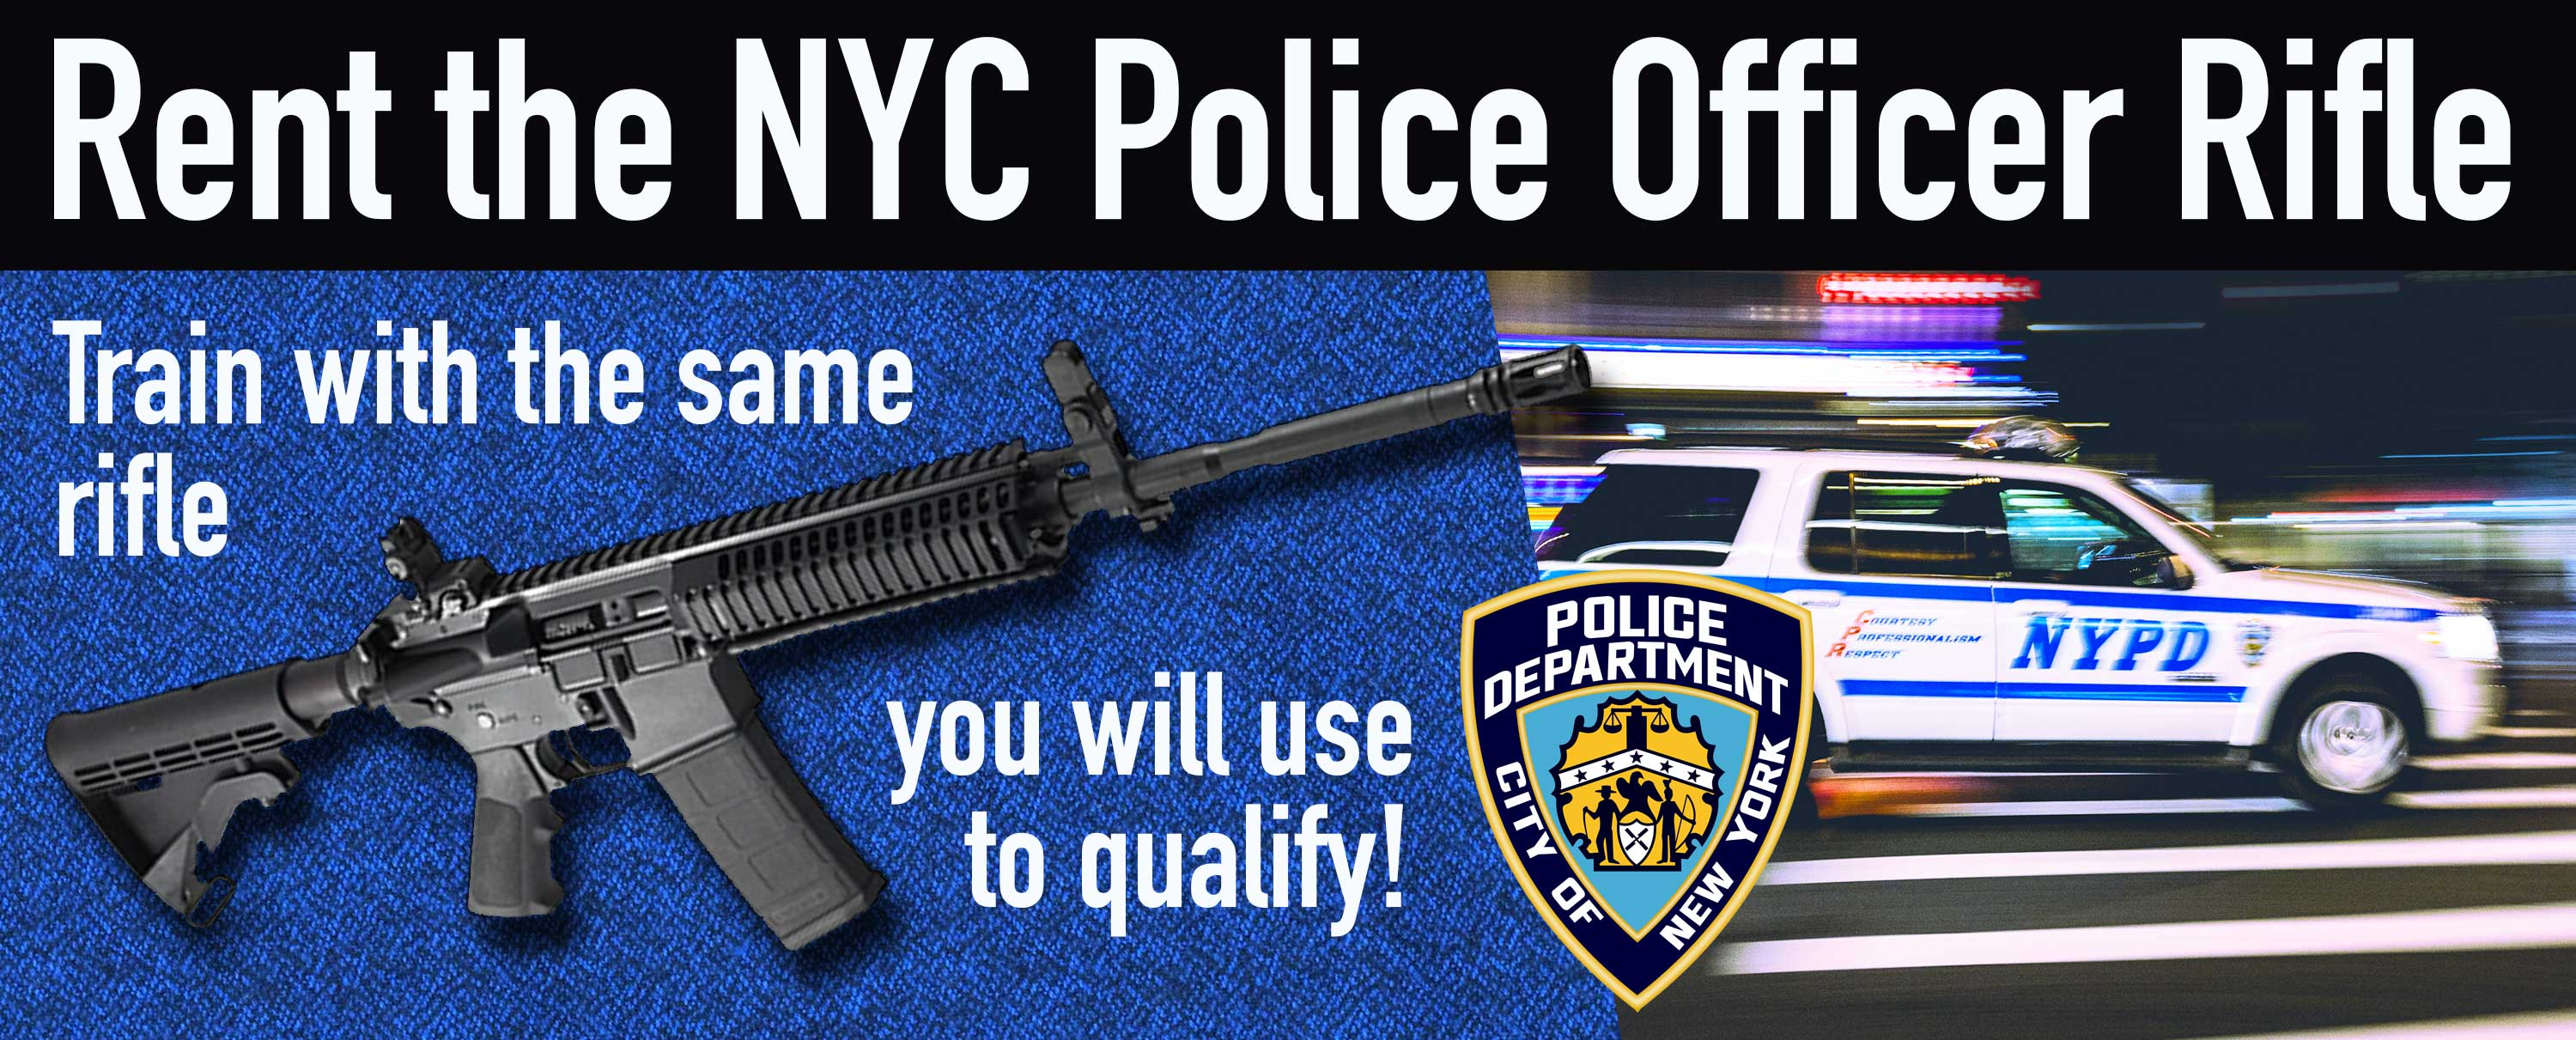 NYPD Rifle Qualification - NYPD Gun Rental